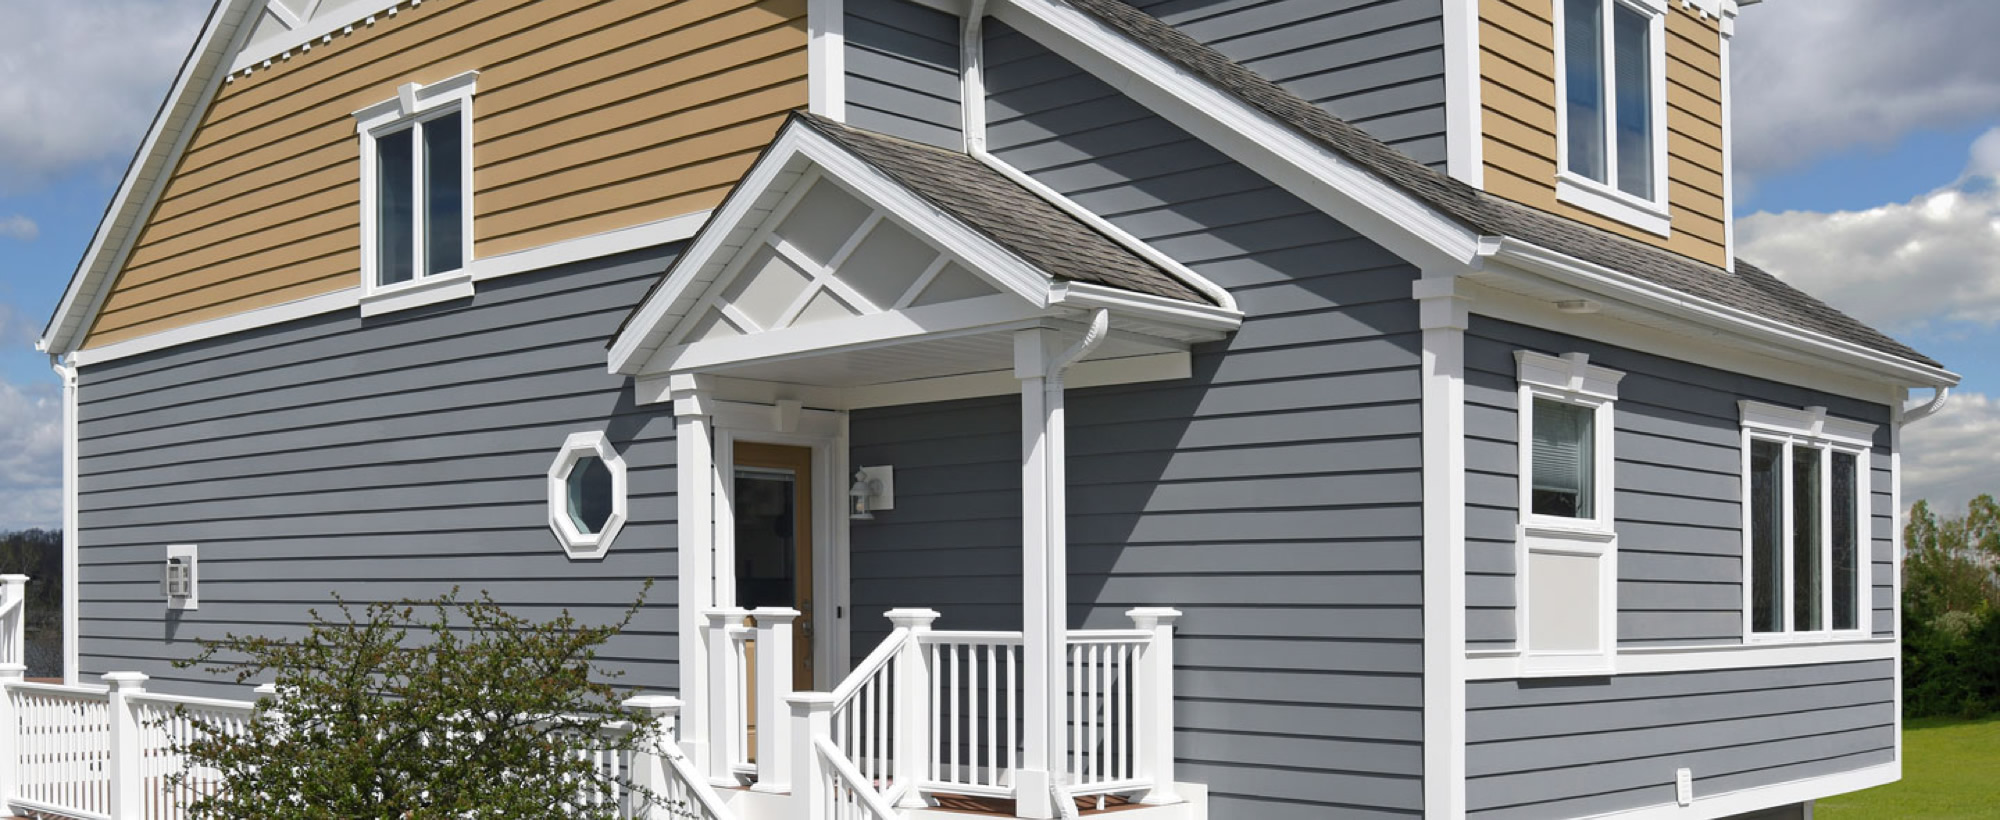 Roofing In Baton Rouge Siding Services In Baton Rouge